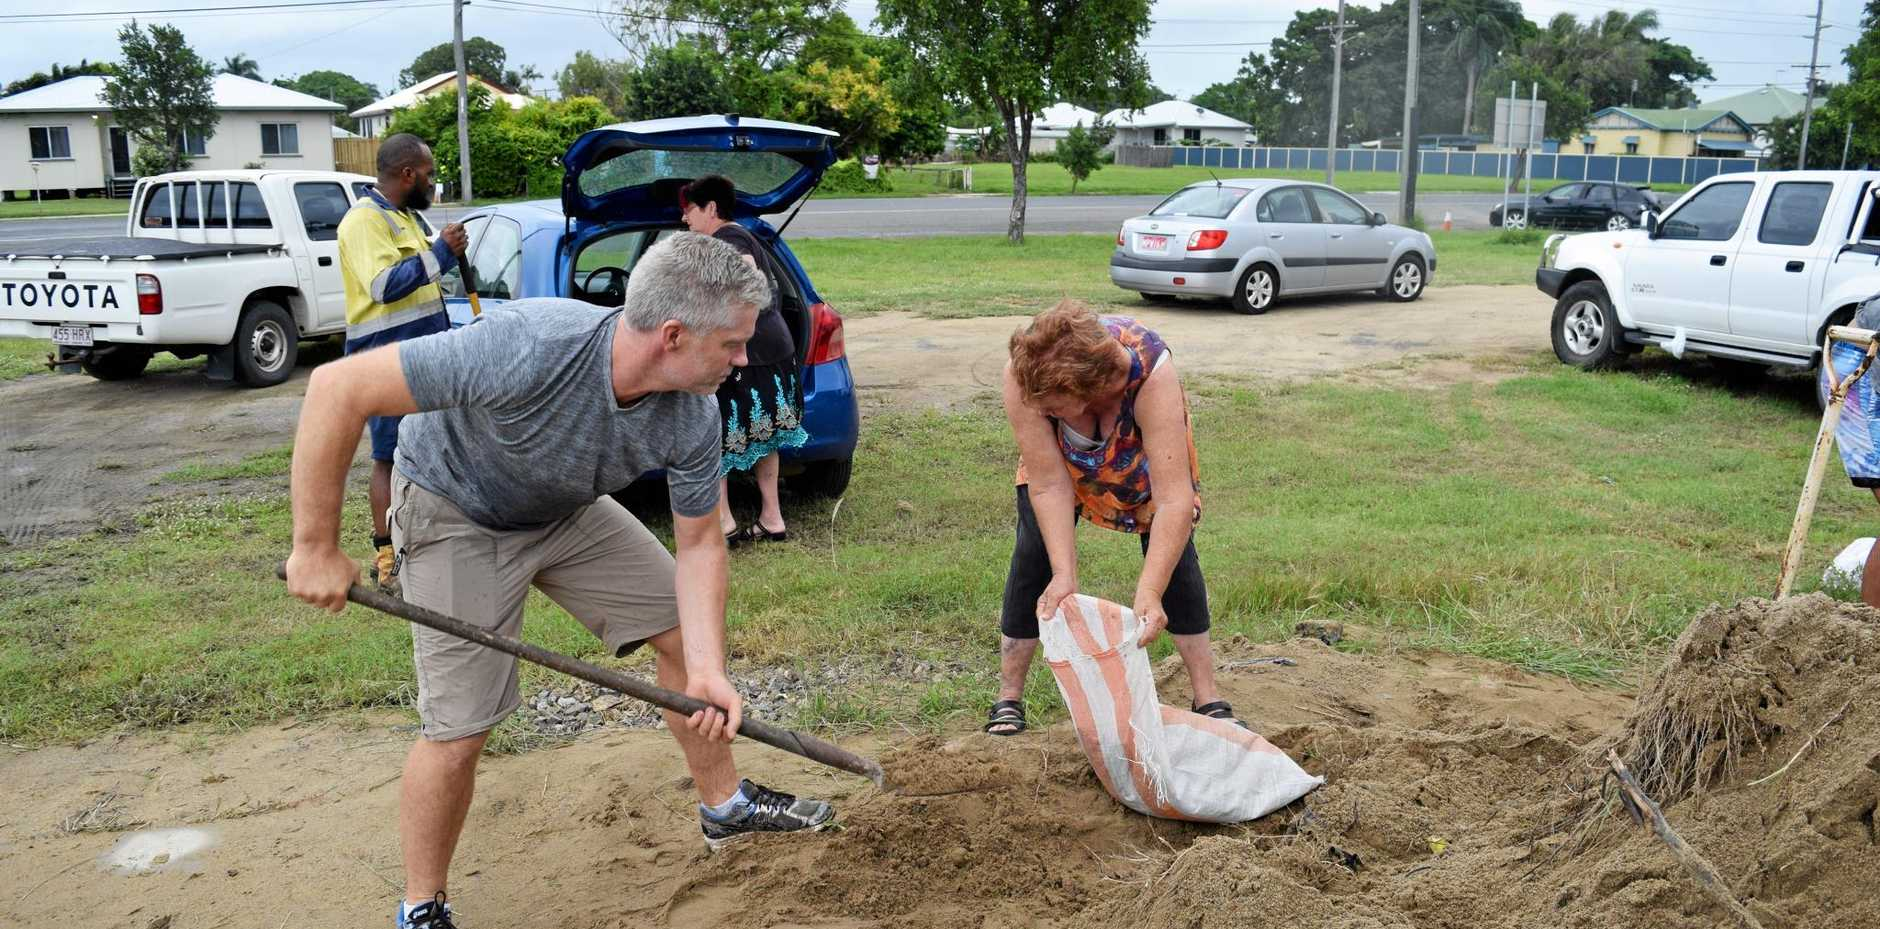 Craig Eberhardt, from Brisbane, was out helping residents fill sand bags.